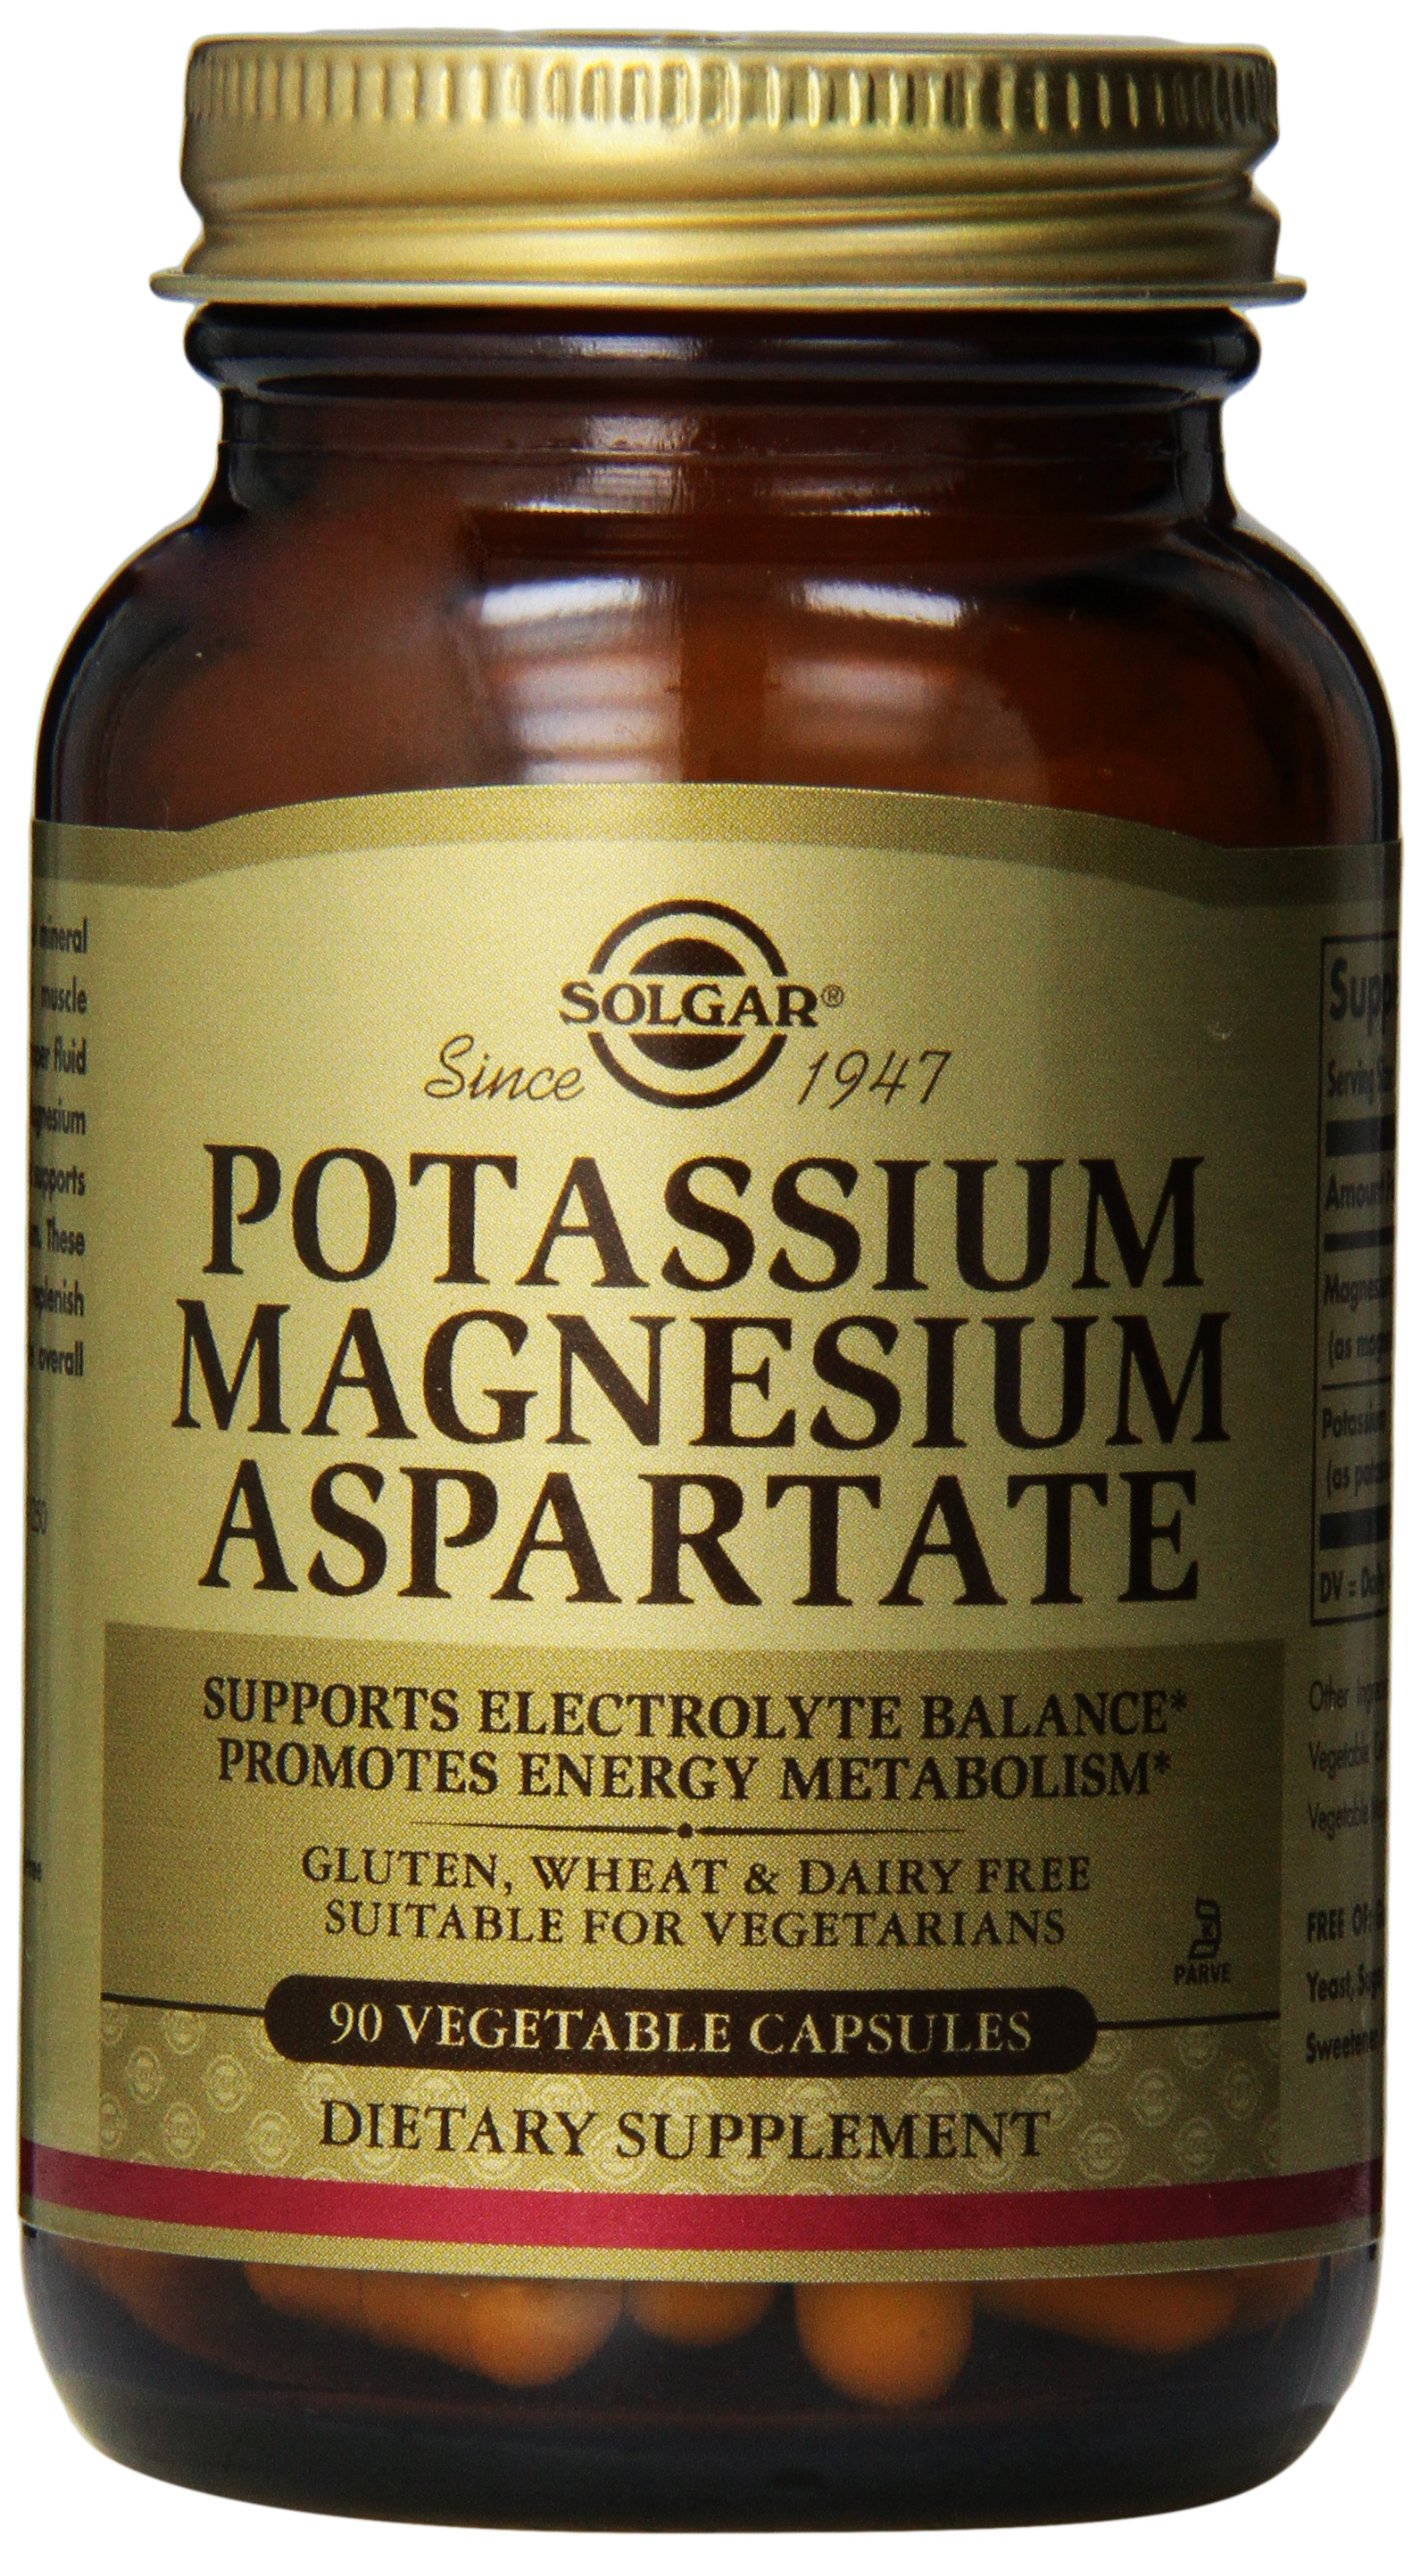 Amazon.com: Solgar – Potassium Magnesium Aspartate, 90 Vegetable Capsules: Health & Personal Care